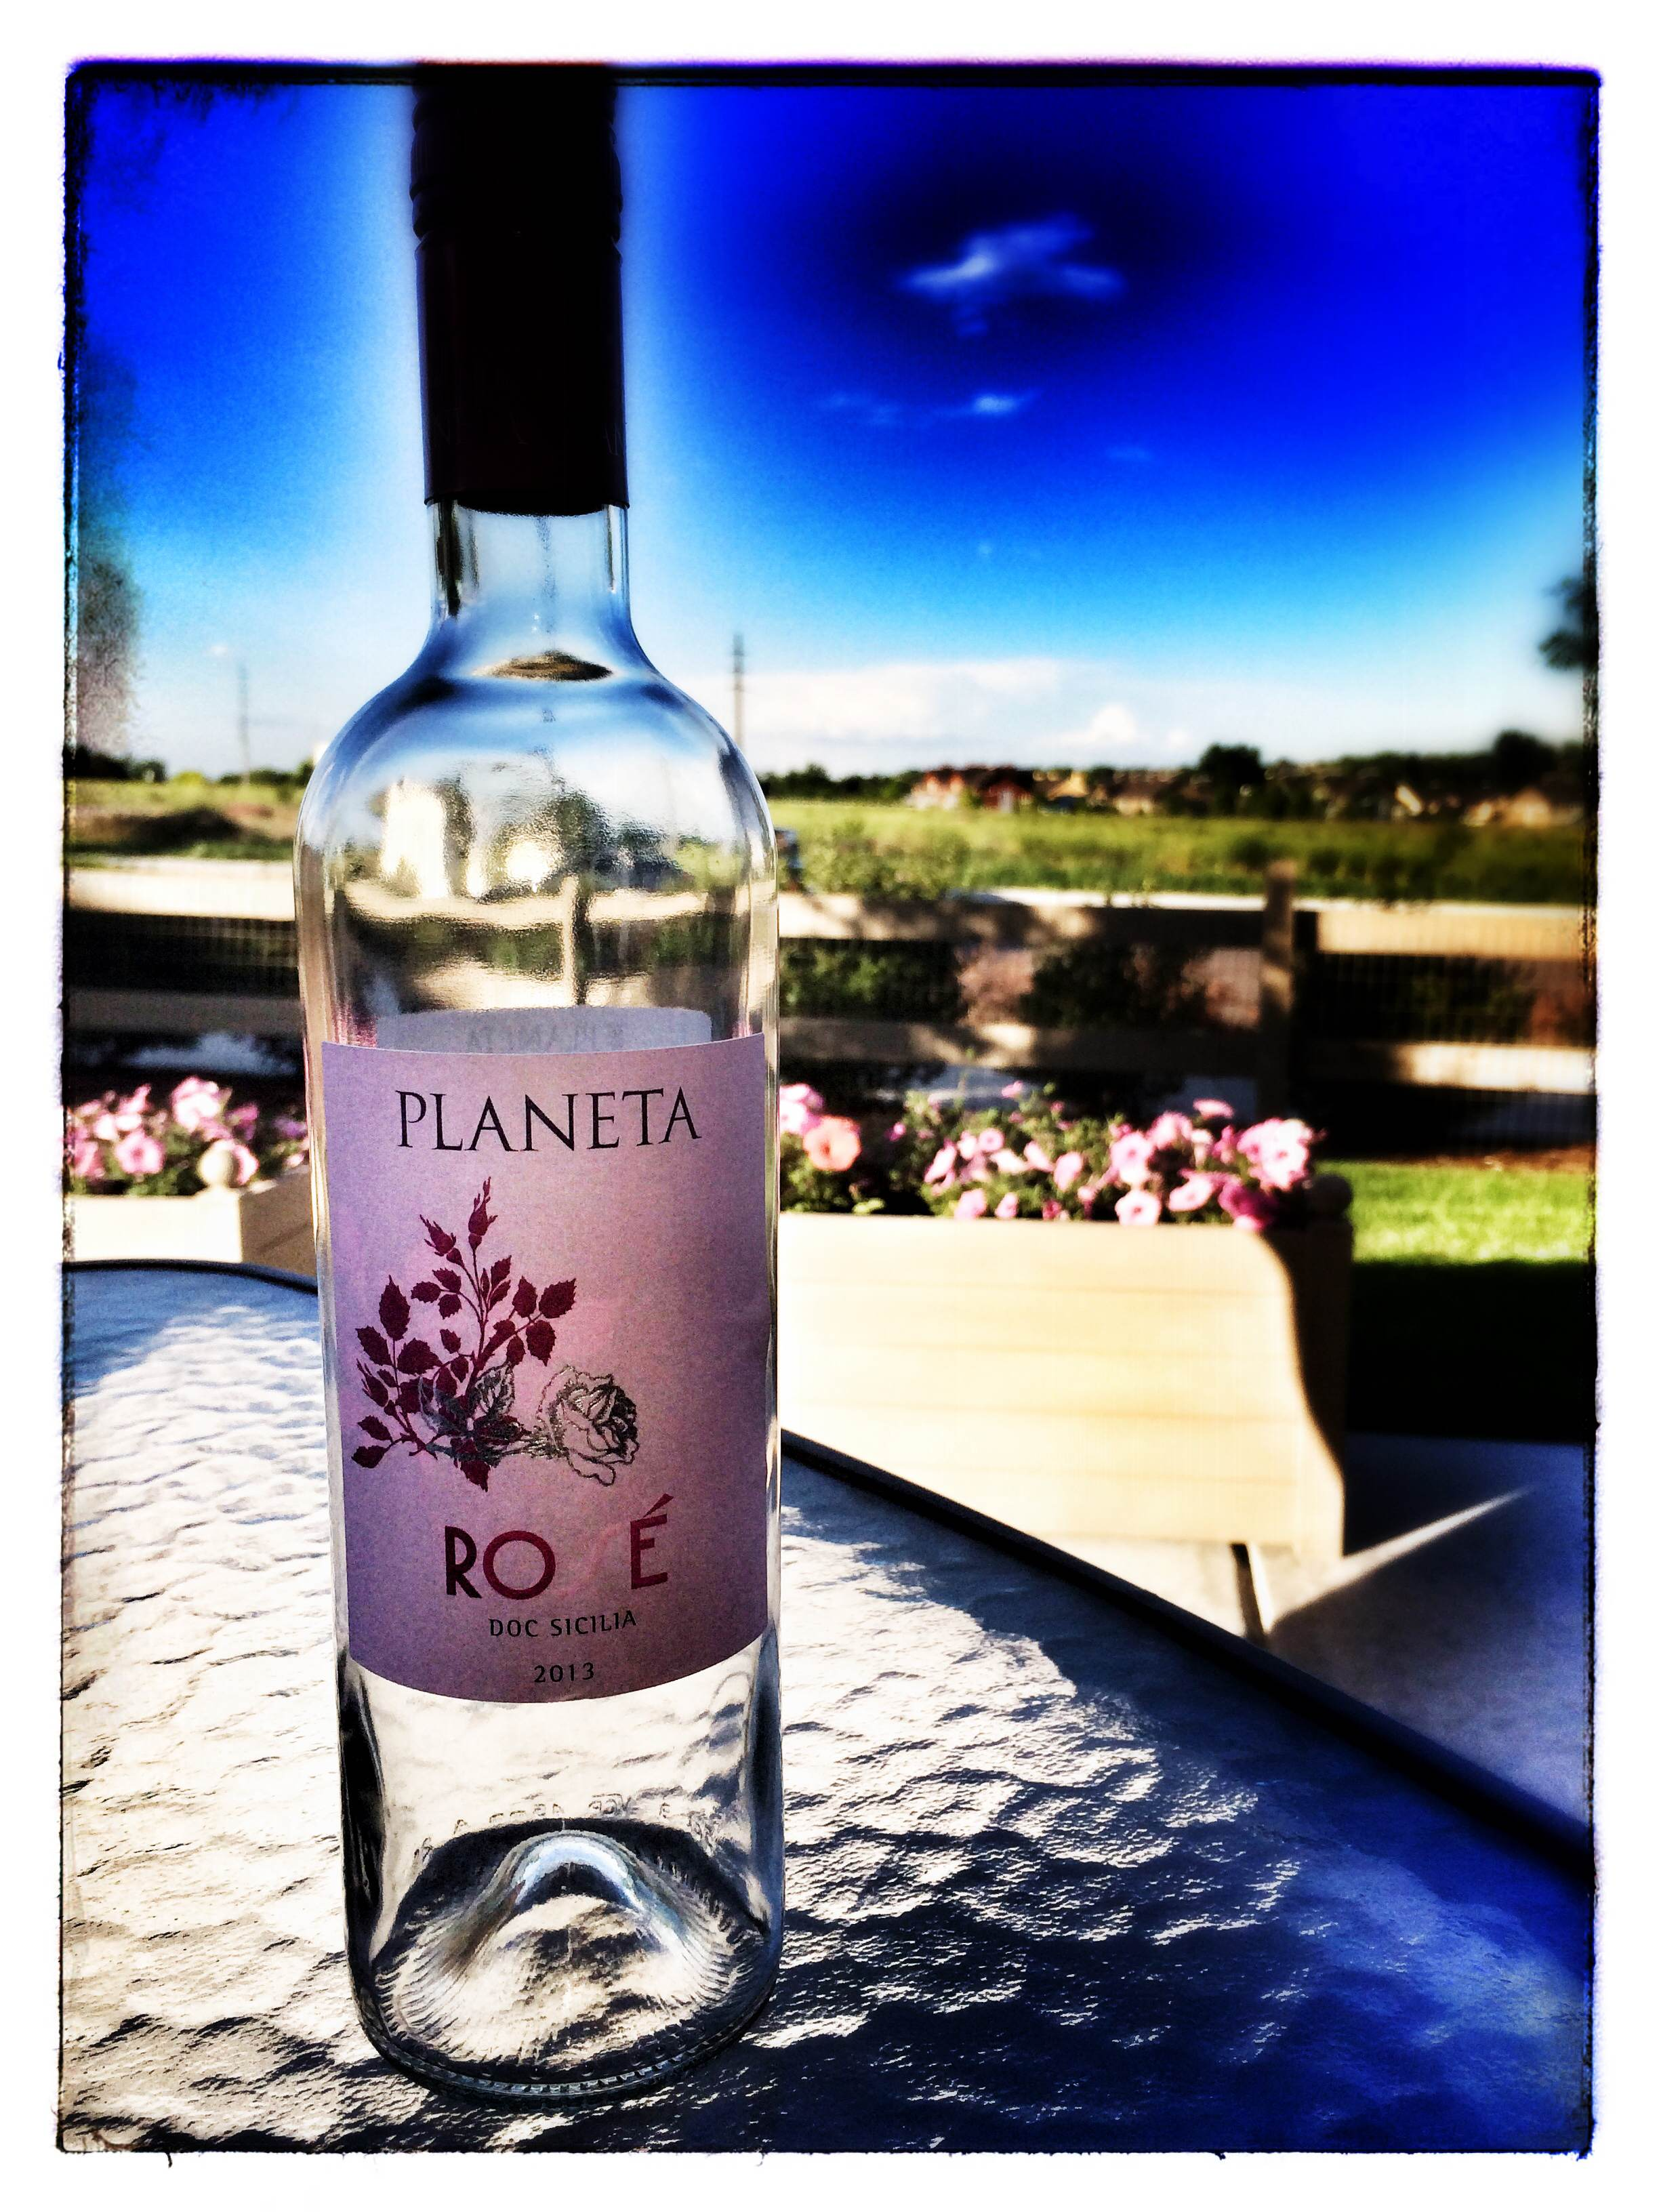 Planeta Rosé on Leslie's patio